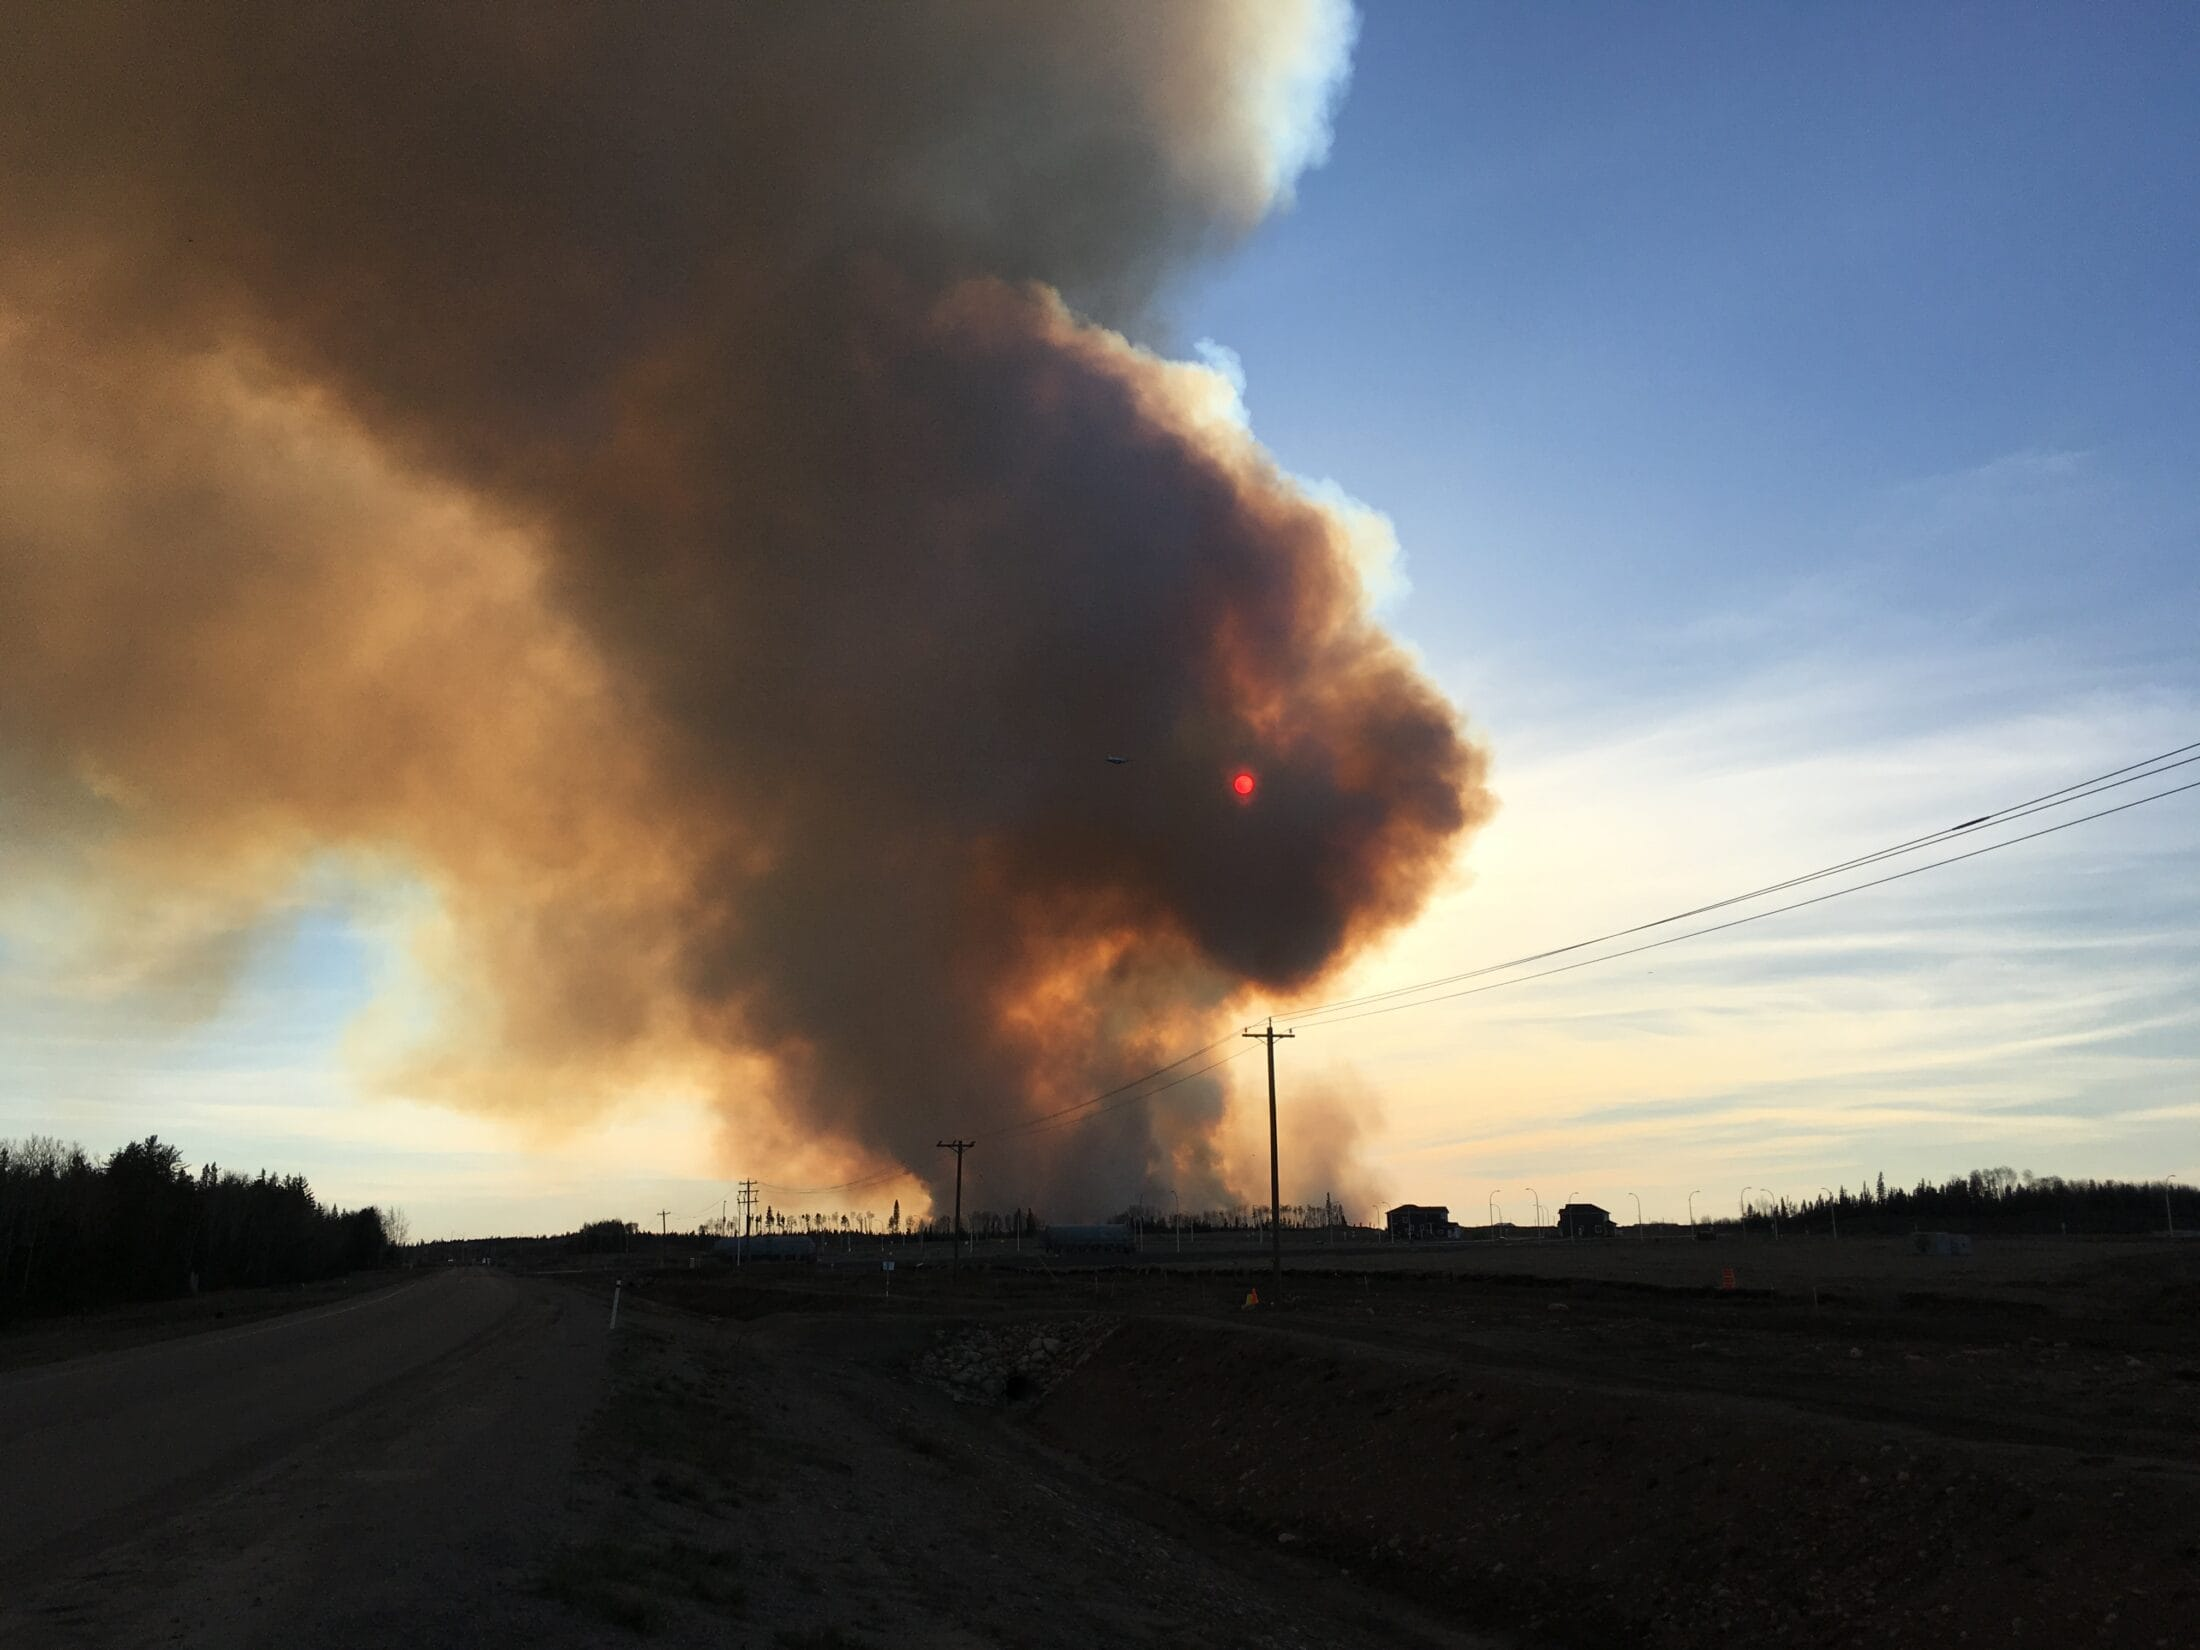 huge smoke cloud. photo taken from a road next to a field